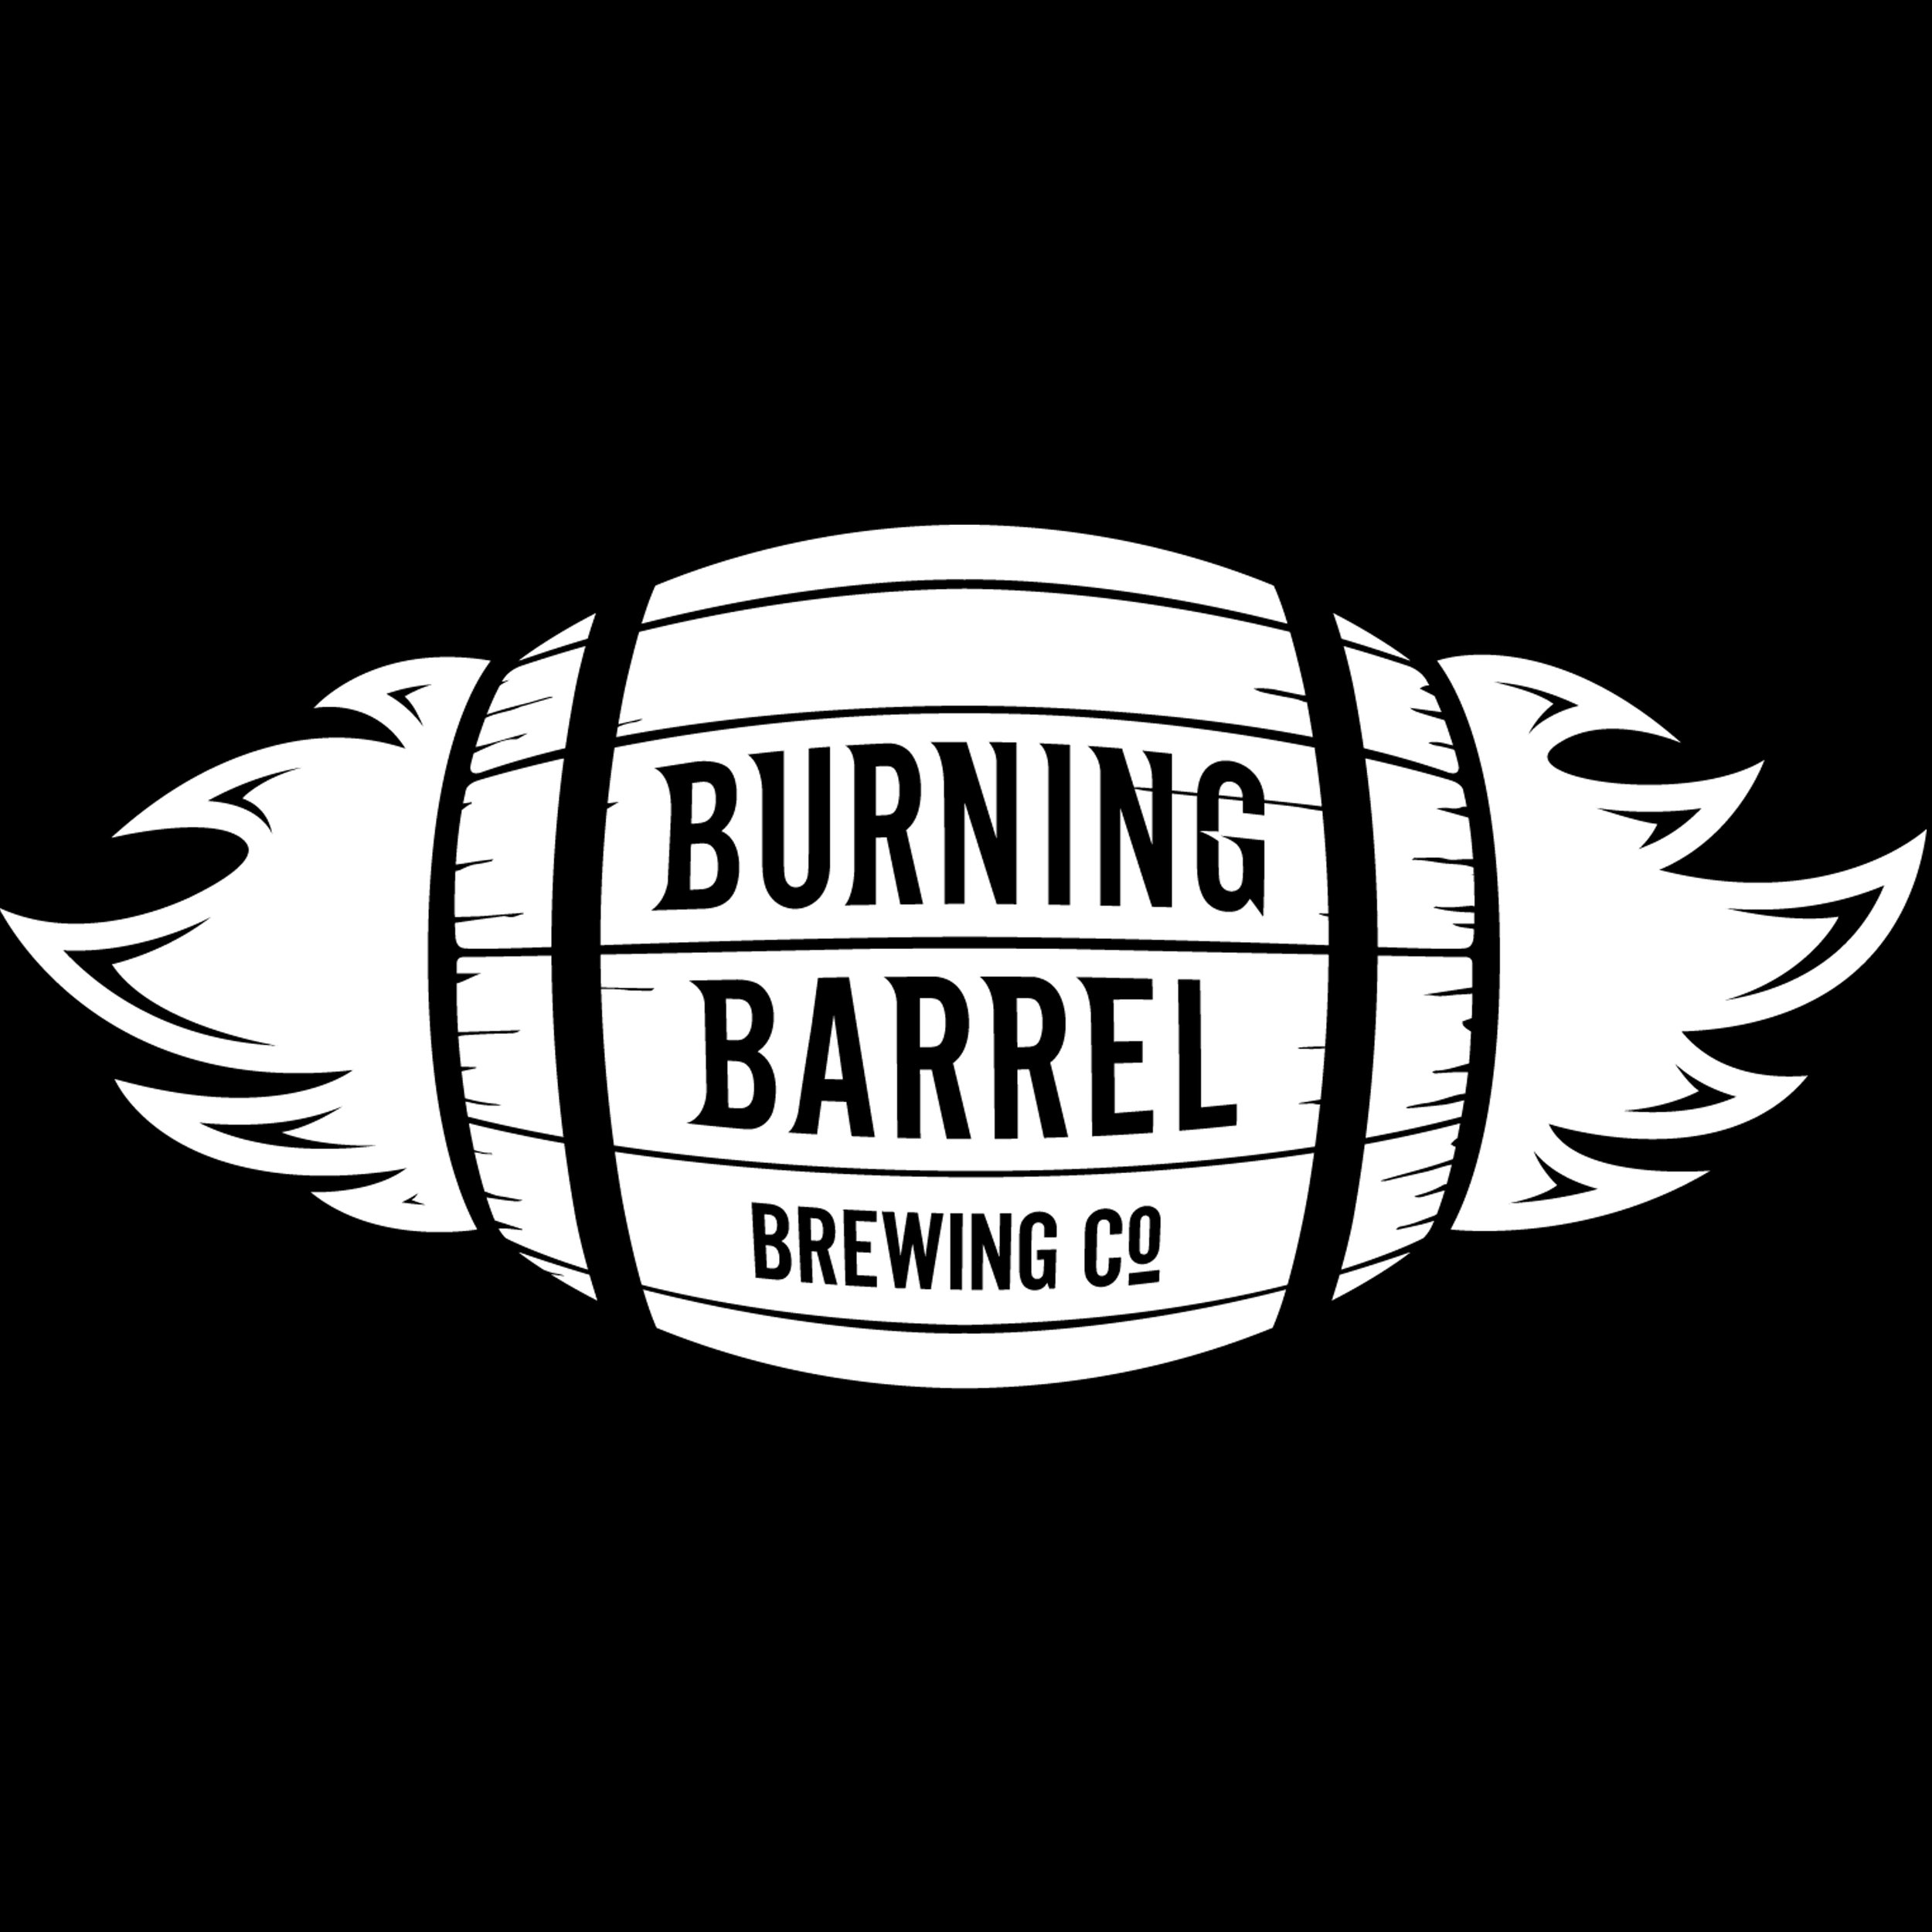 BurningBarrel_logo_white.jpg